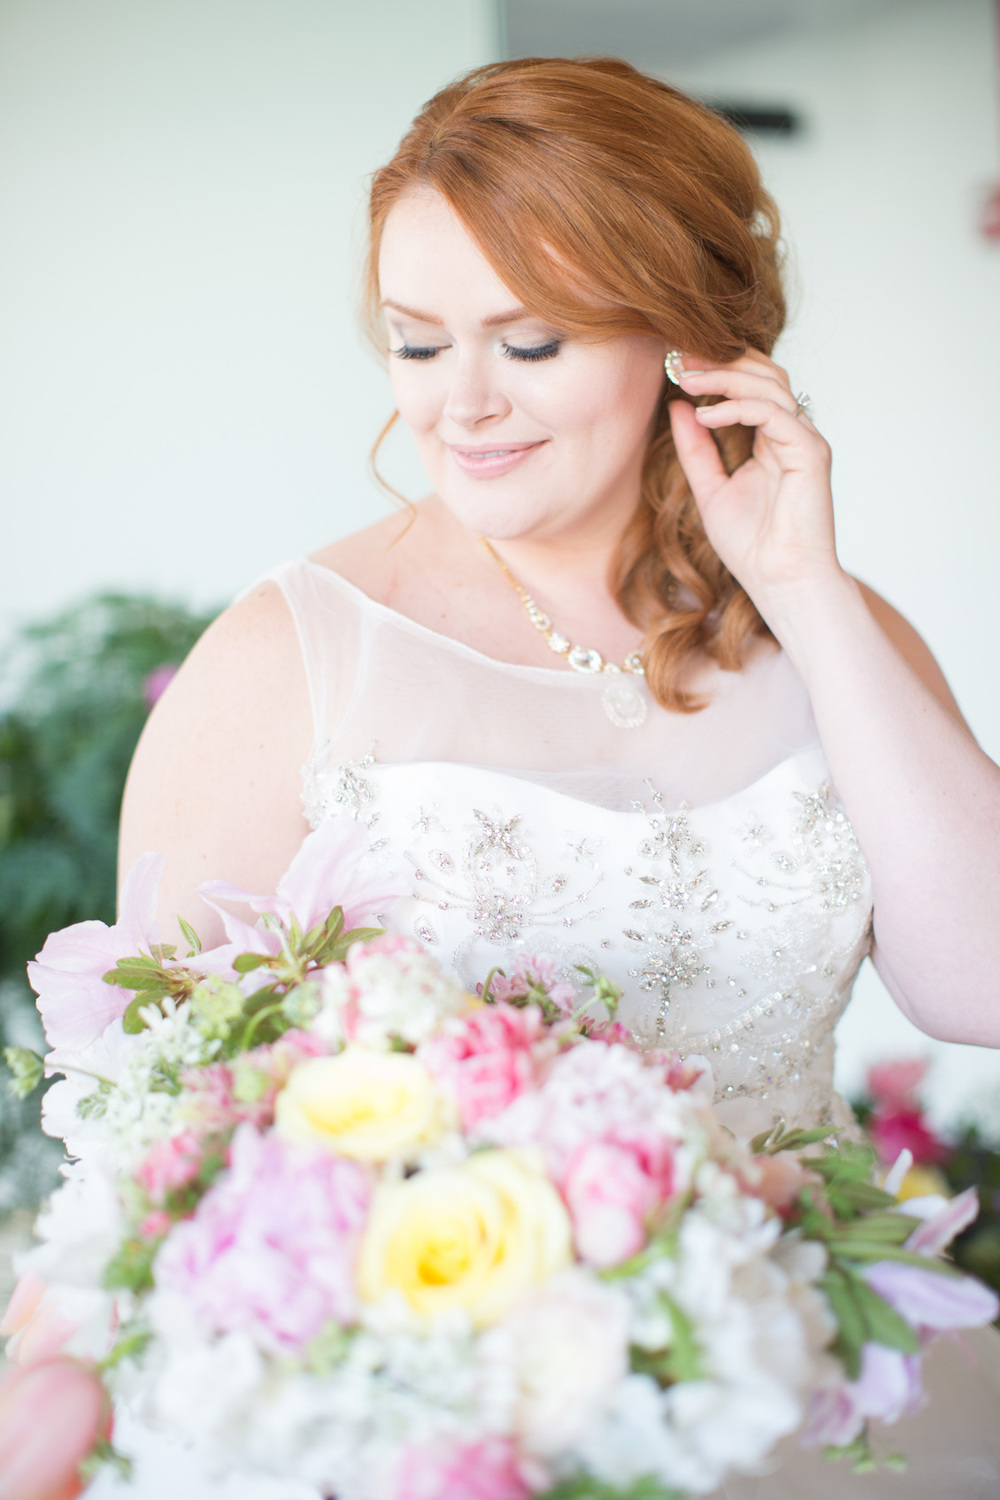 Gorgeous Bridal Portrait with a Lush Bridal Bouquet / Florals by EightTreeStreet / Photography by Amy Nicole